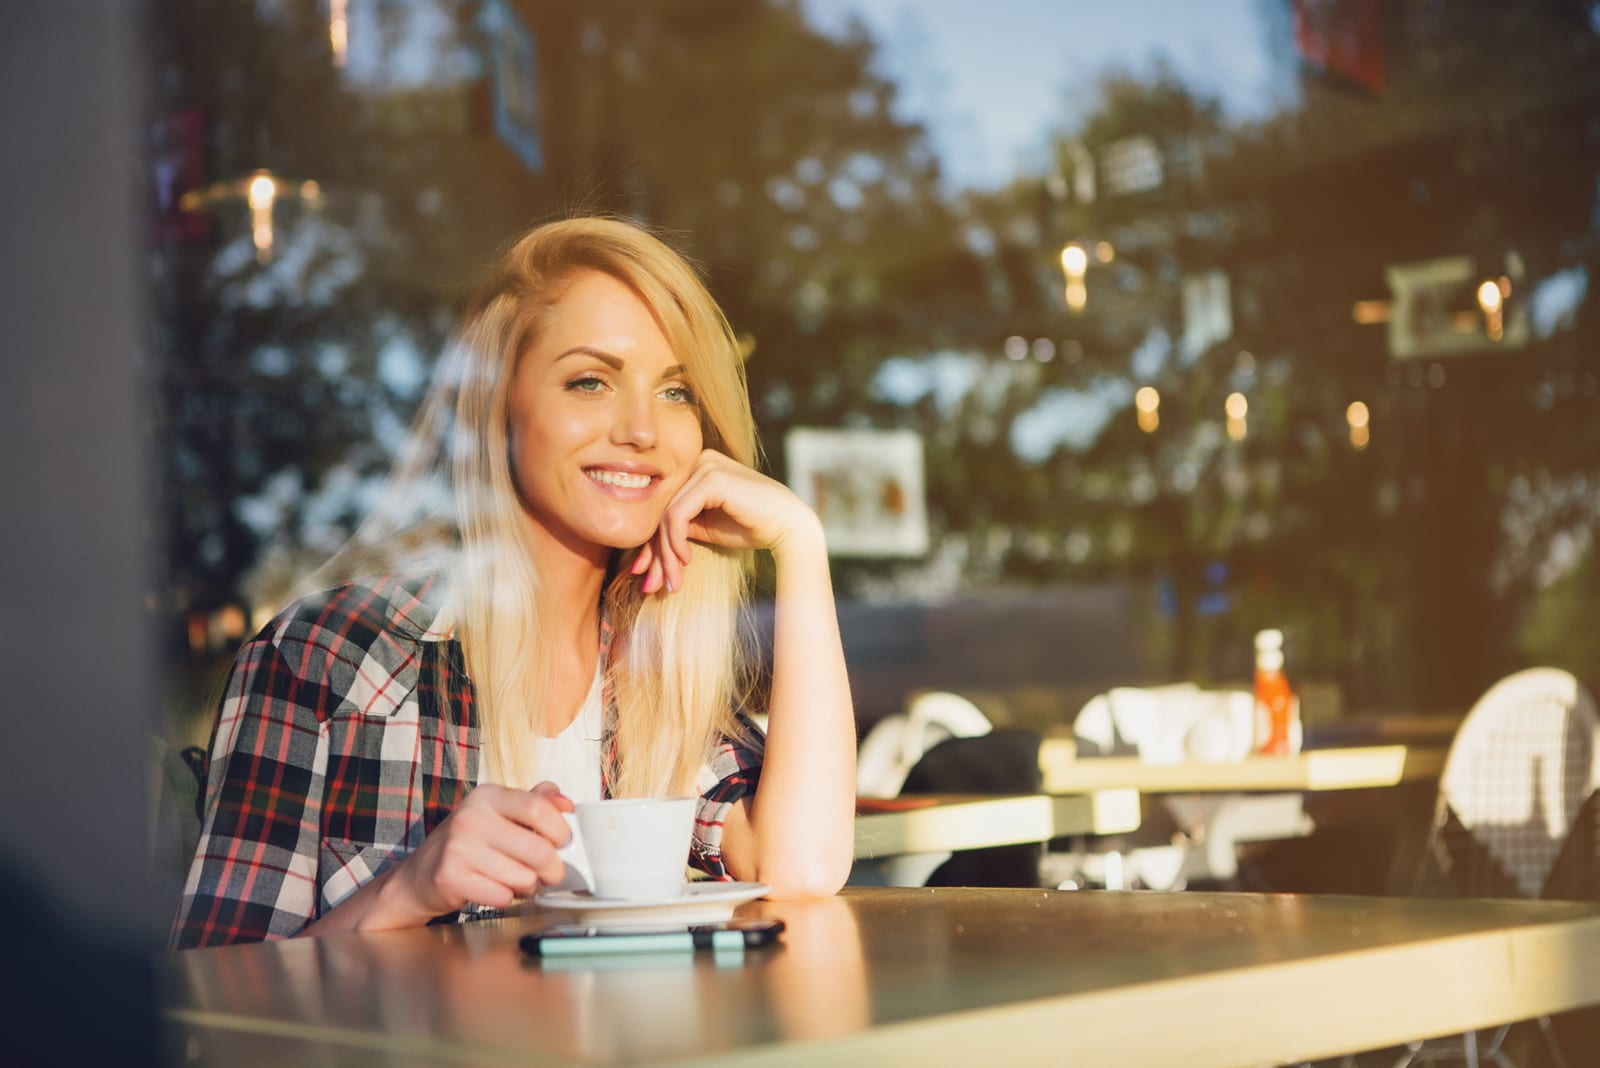 the woman sits and drinks coffee